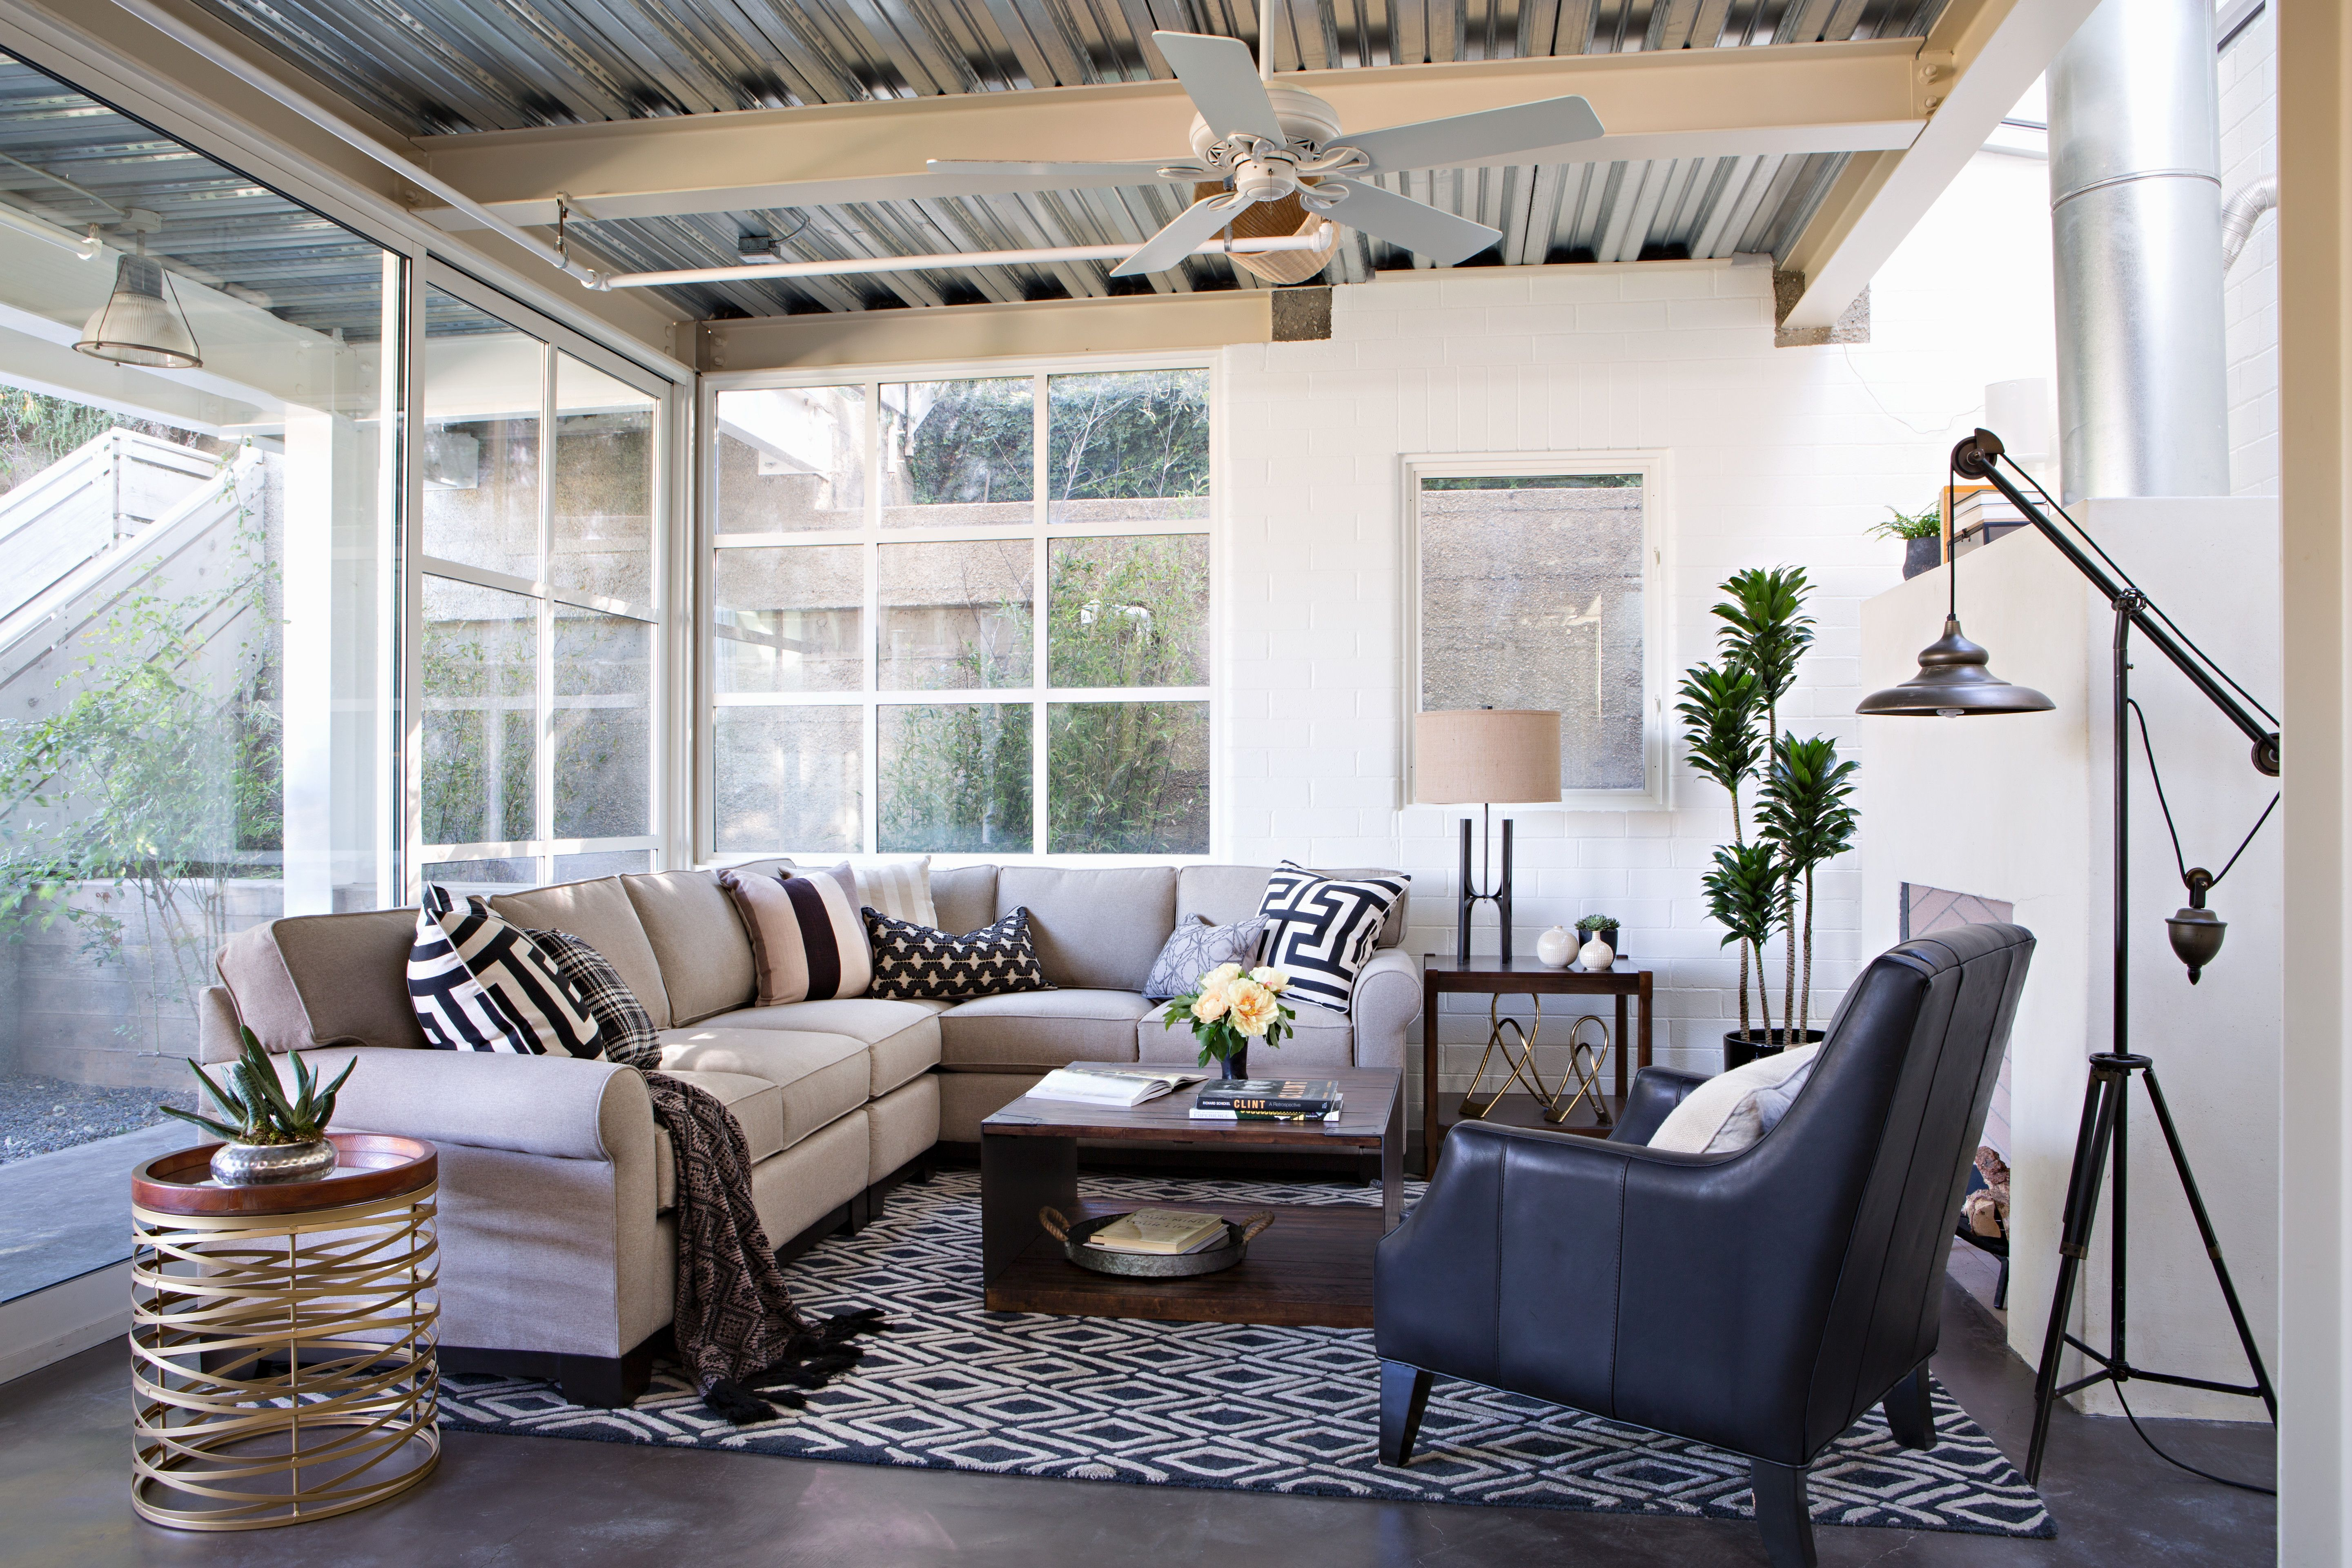 An industrial living room doesn\'t have to be dark. Add a sense of ...